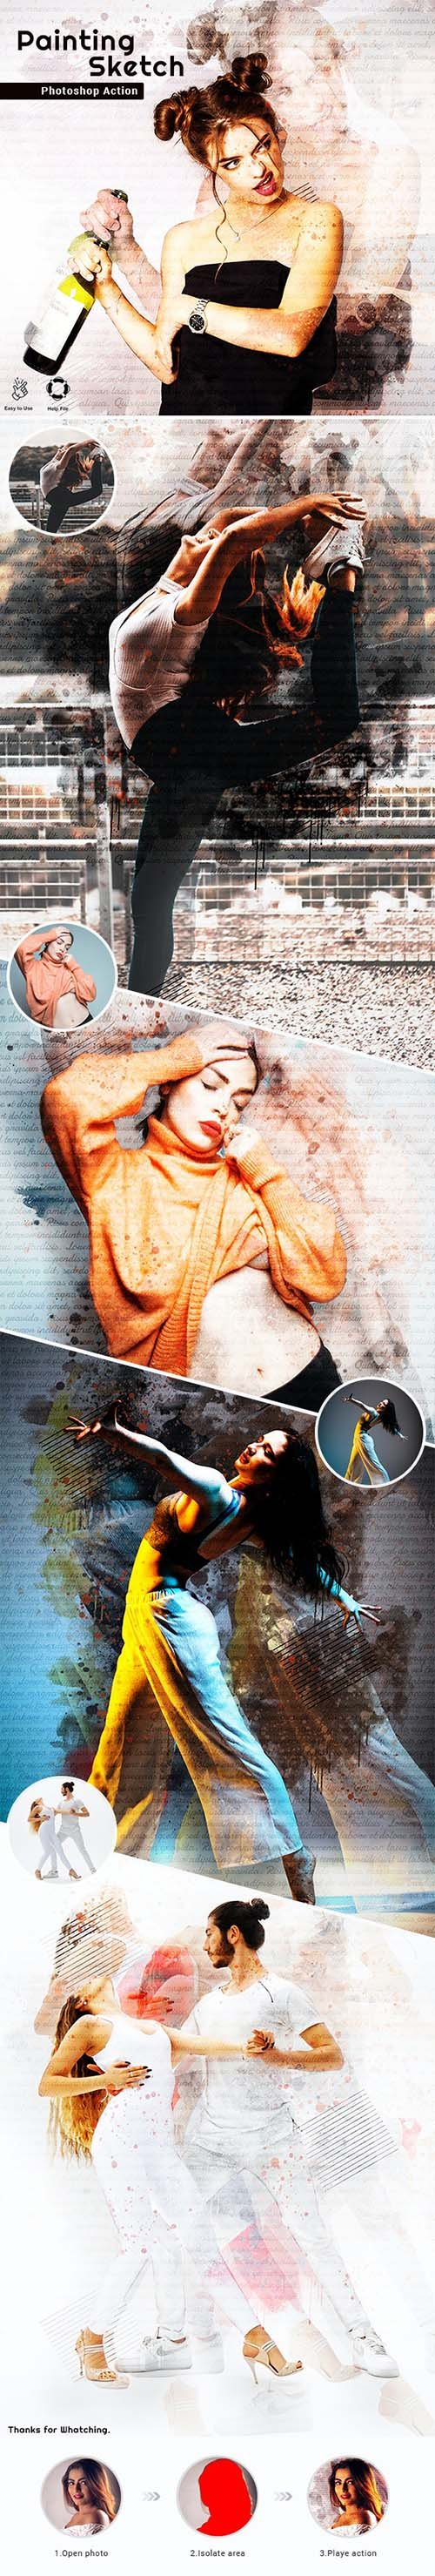 GraphicRiver - Painting Sketch Photoshop Action 26119936